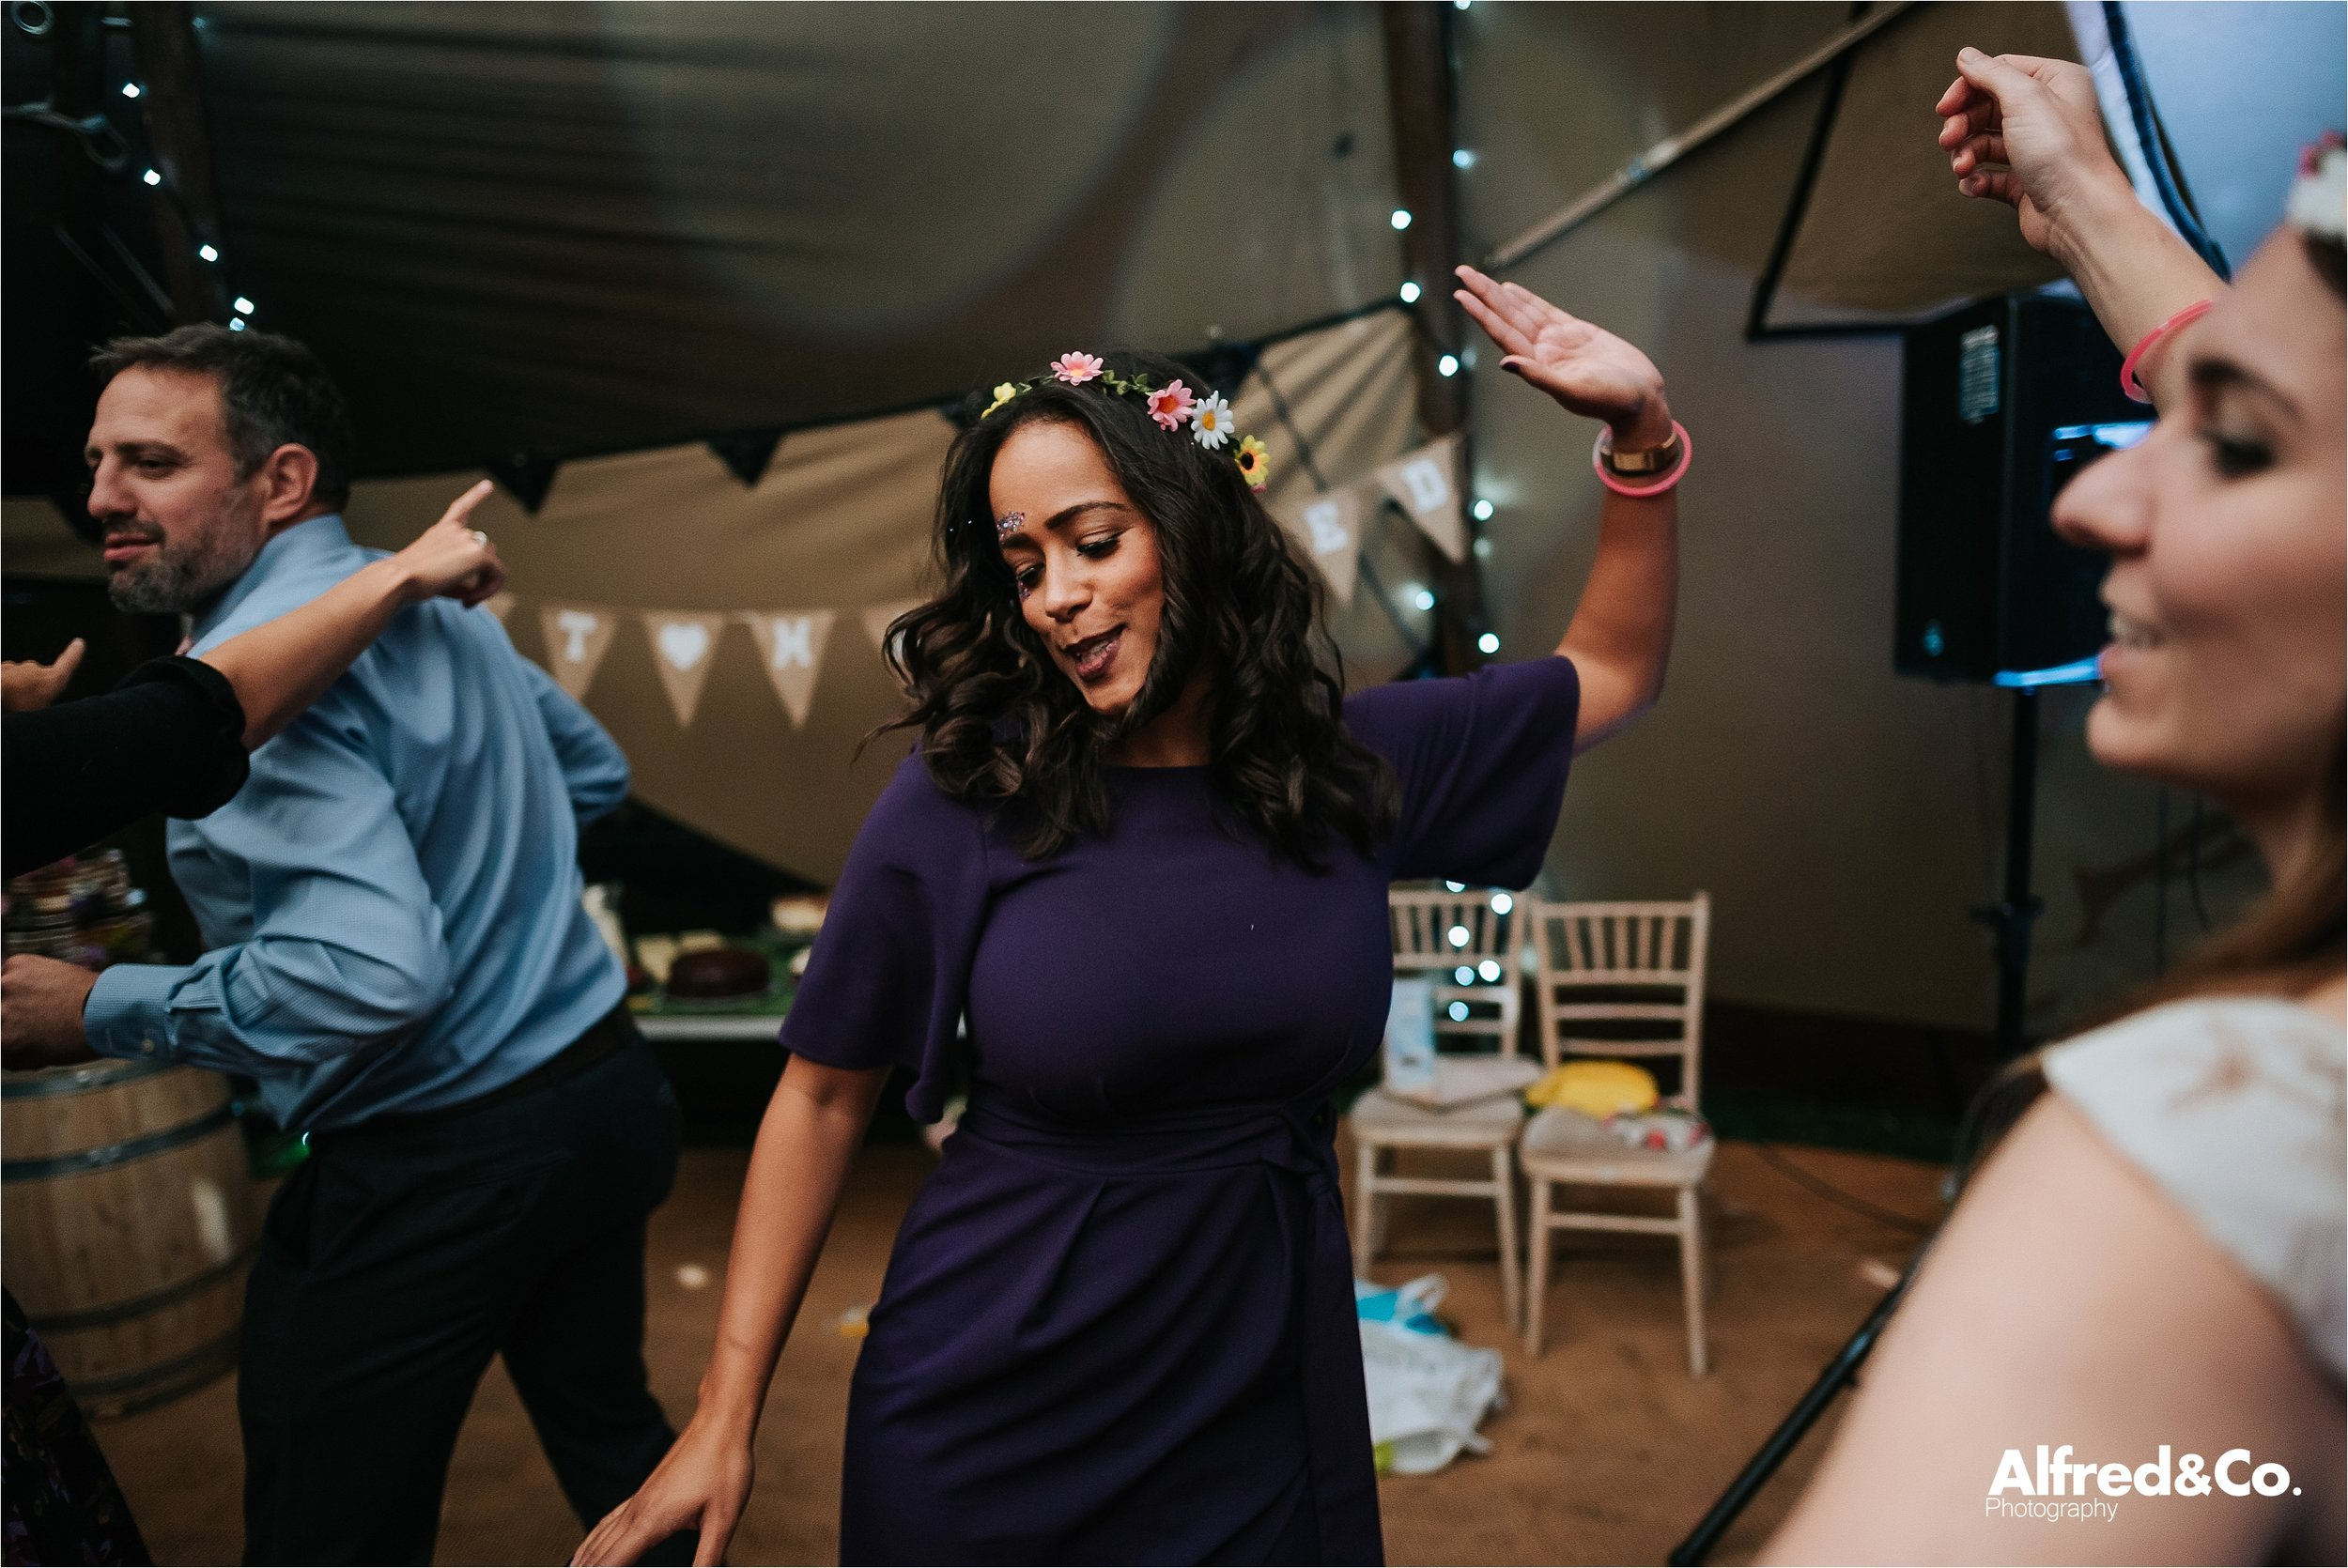 tipi+wedding+lancashire+photographer+rochdale110.jpg